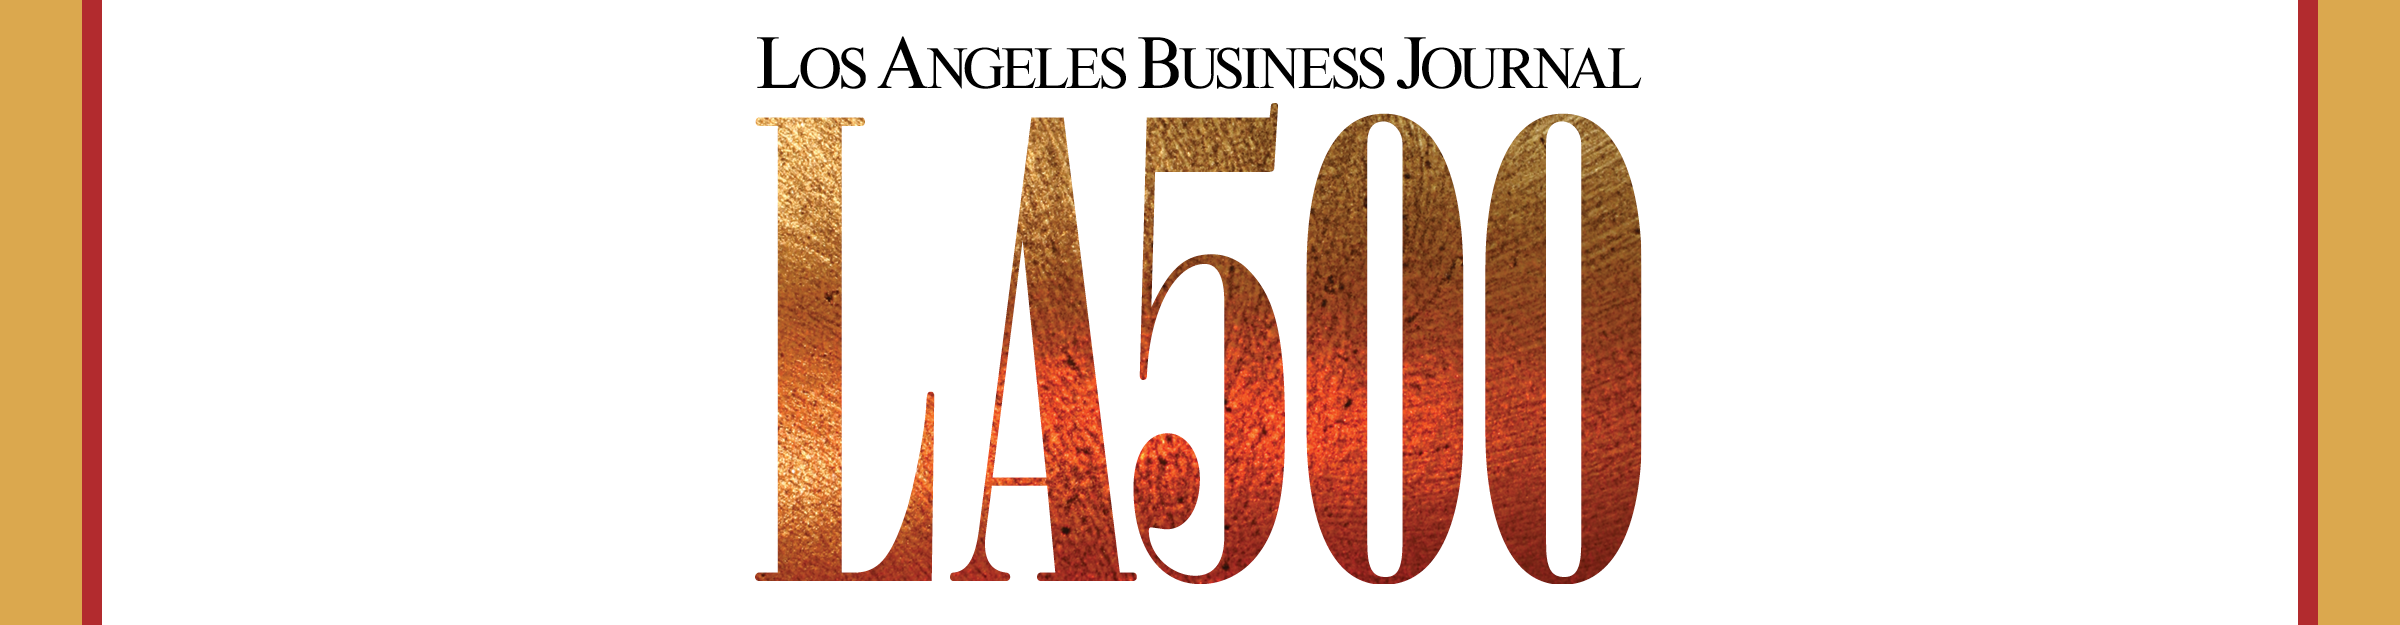 Los Angeles Business Journal LA 500 Event Banner